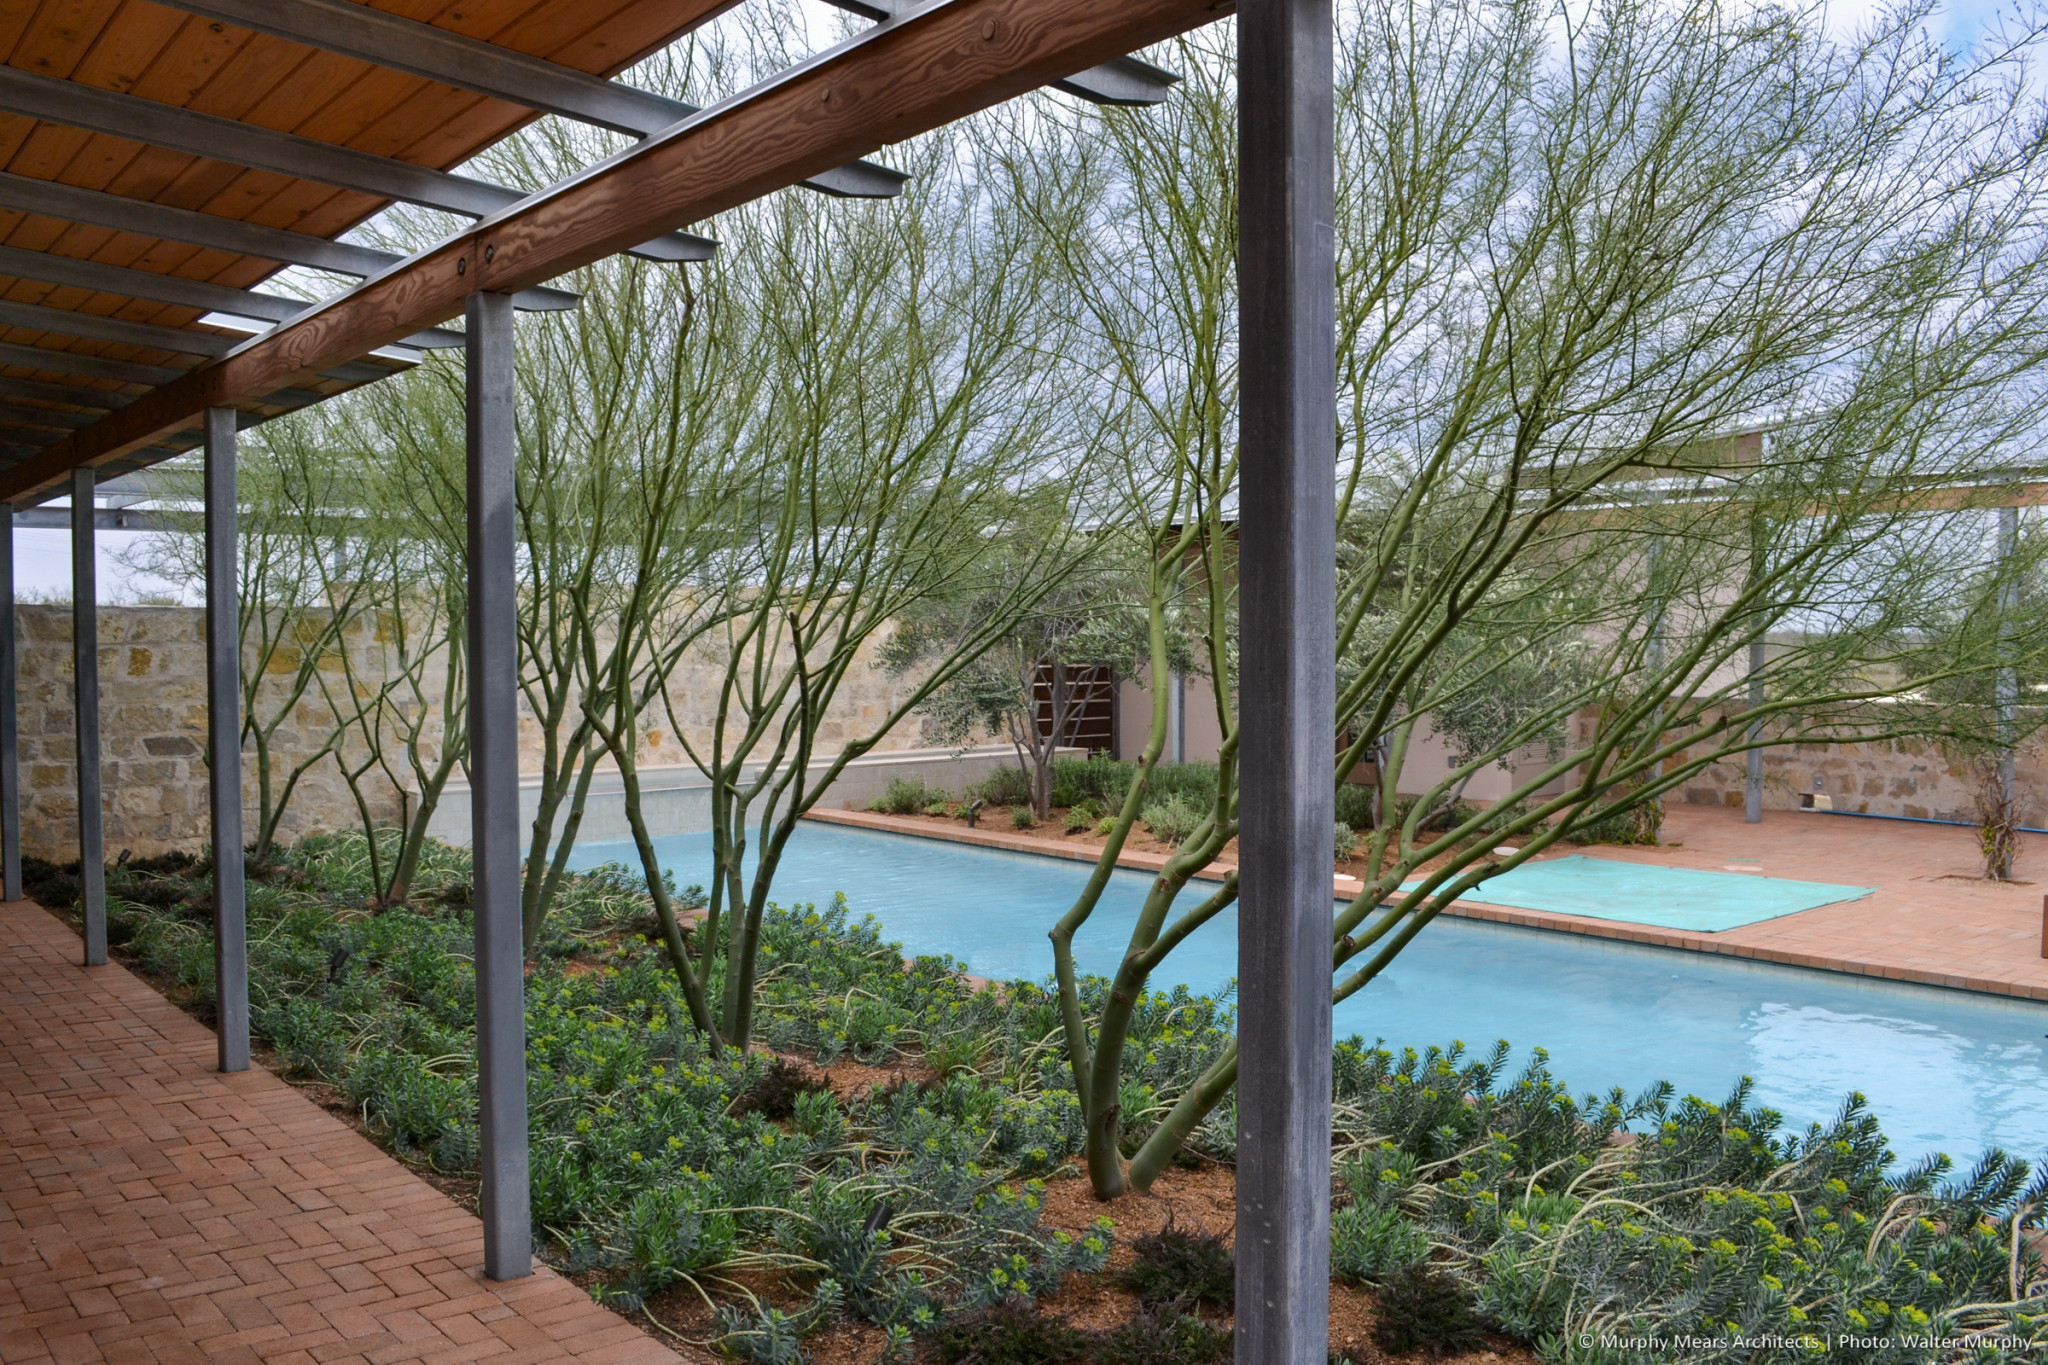 inner courtyard pool surrounded by brick paver terrace with palo verde trees in desert landscaping